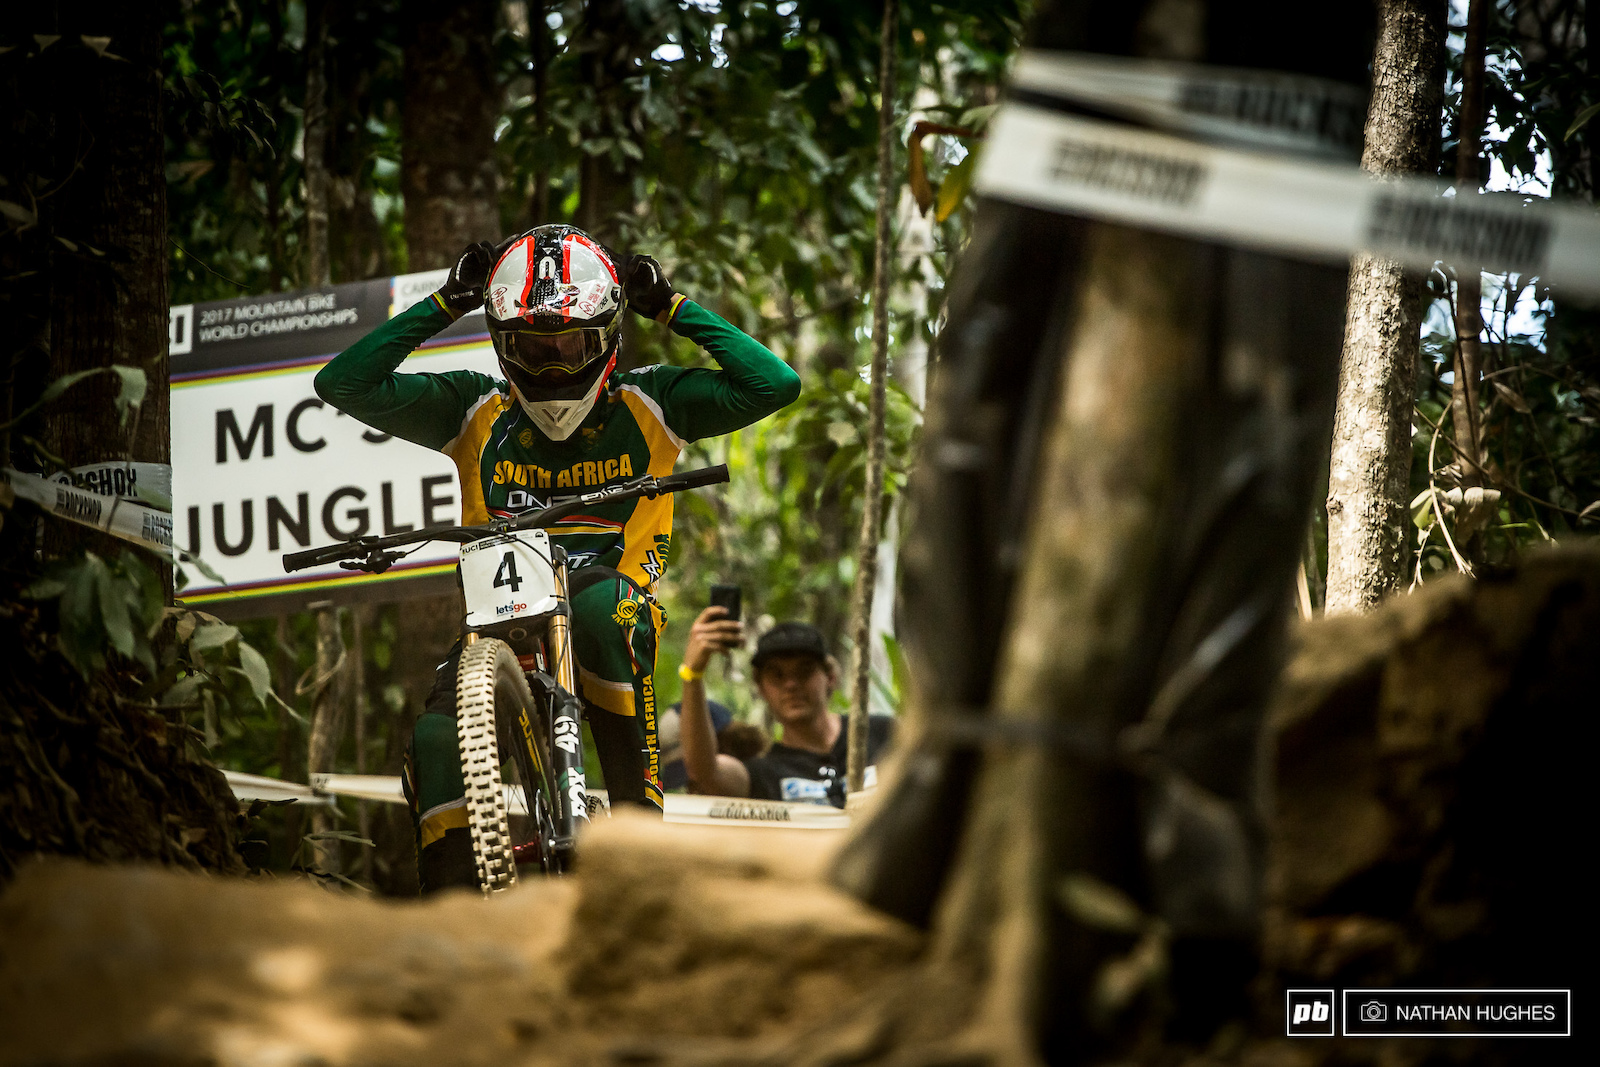 Last man left in the jungle today was Greg Minnaar scoping those last possible line tune-ups.